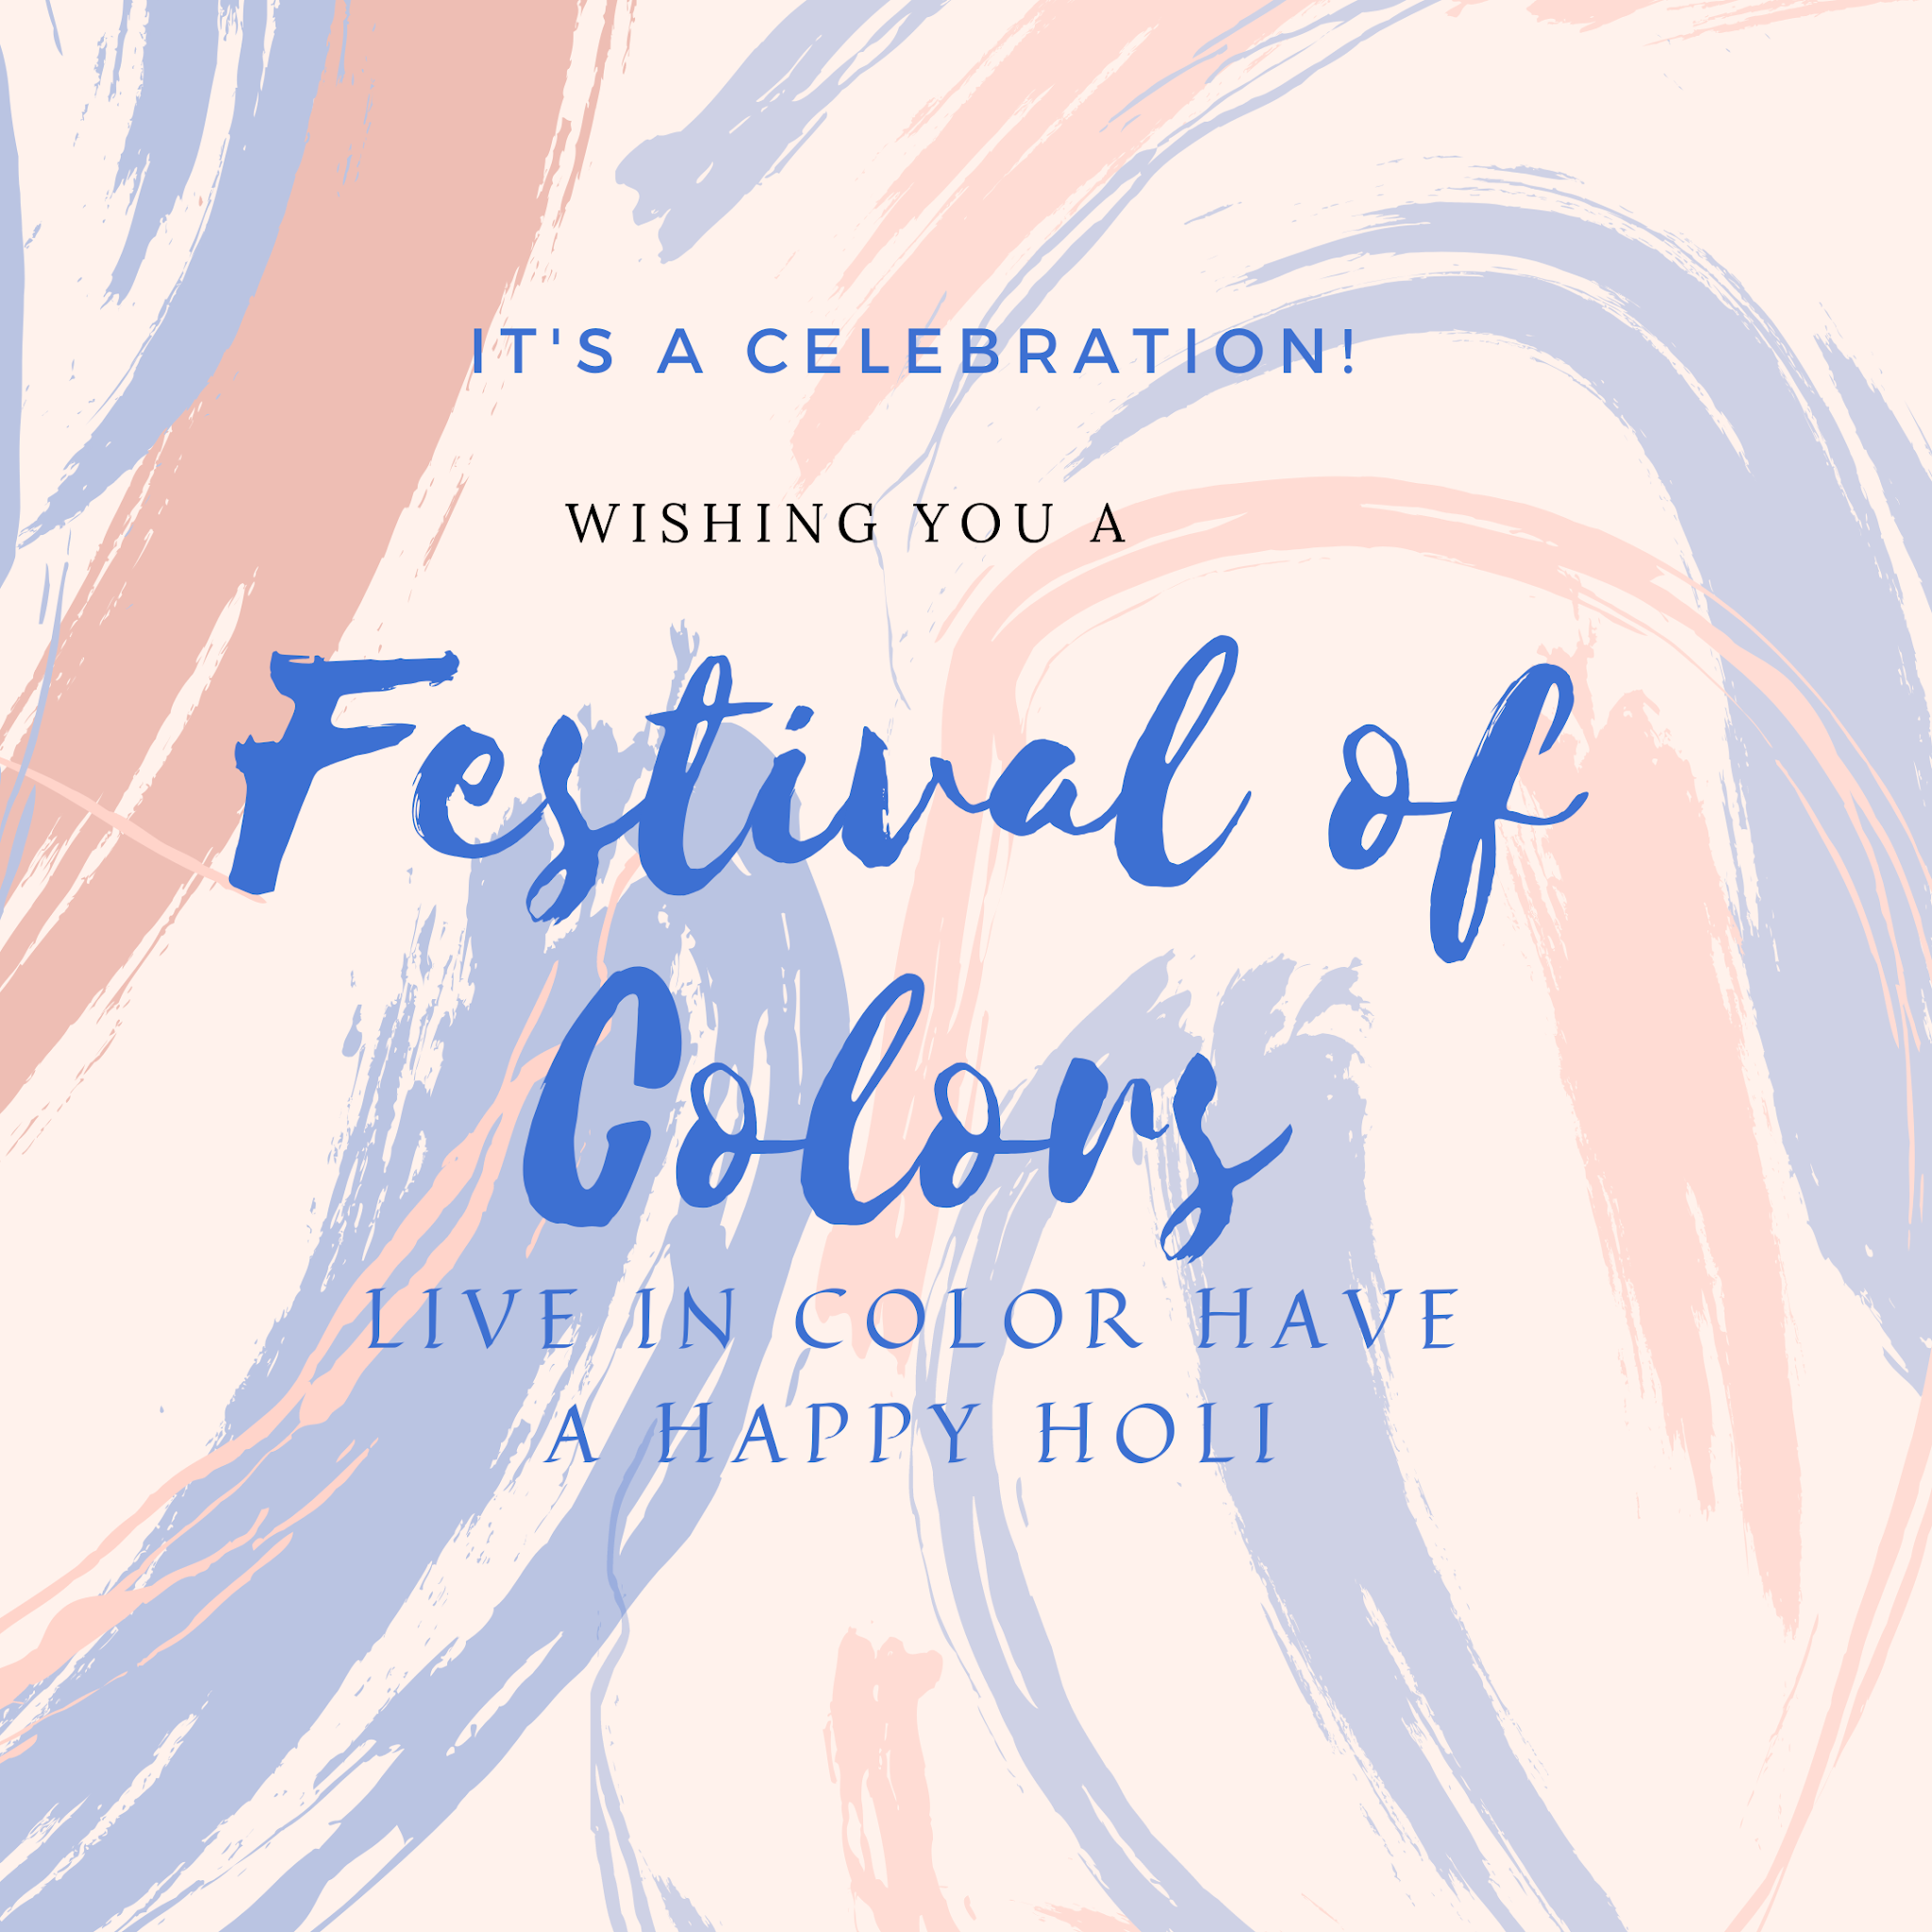 Happy holi status images wishes, Best Beautiful Happy Birthday English Wishes, Whatsapp Happy Birthday images free download,